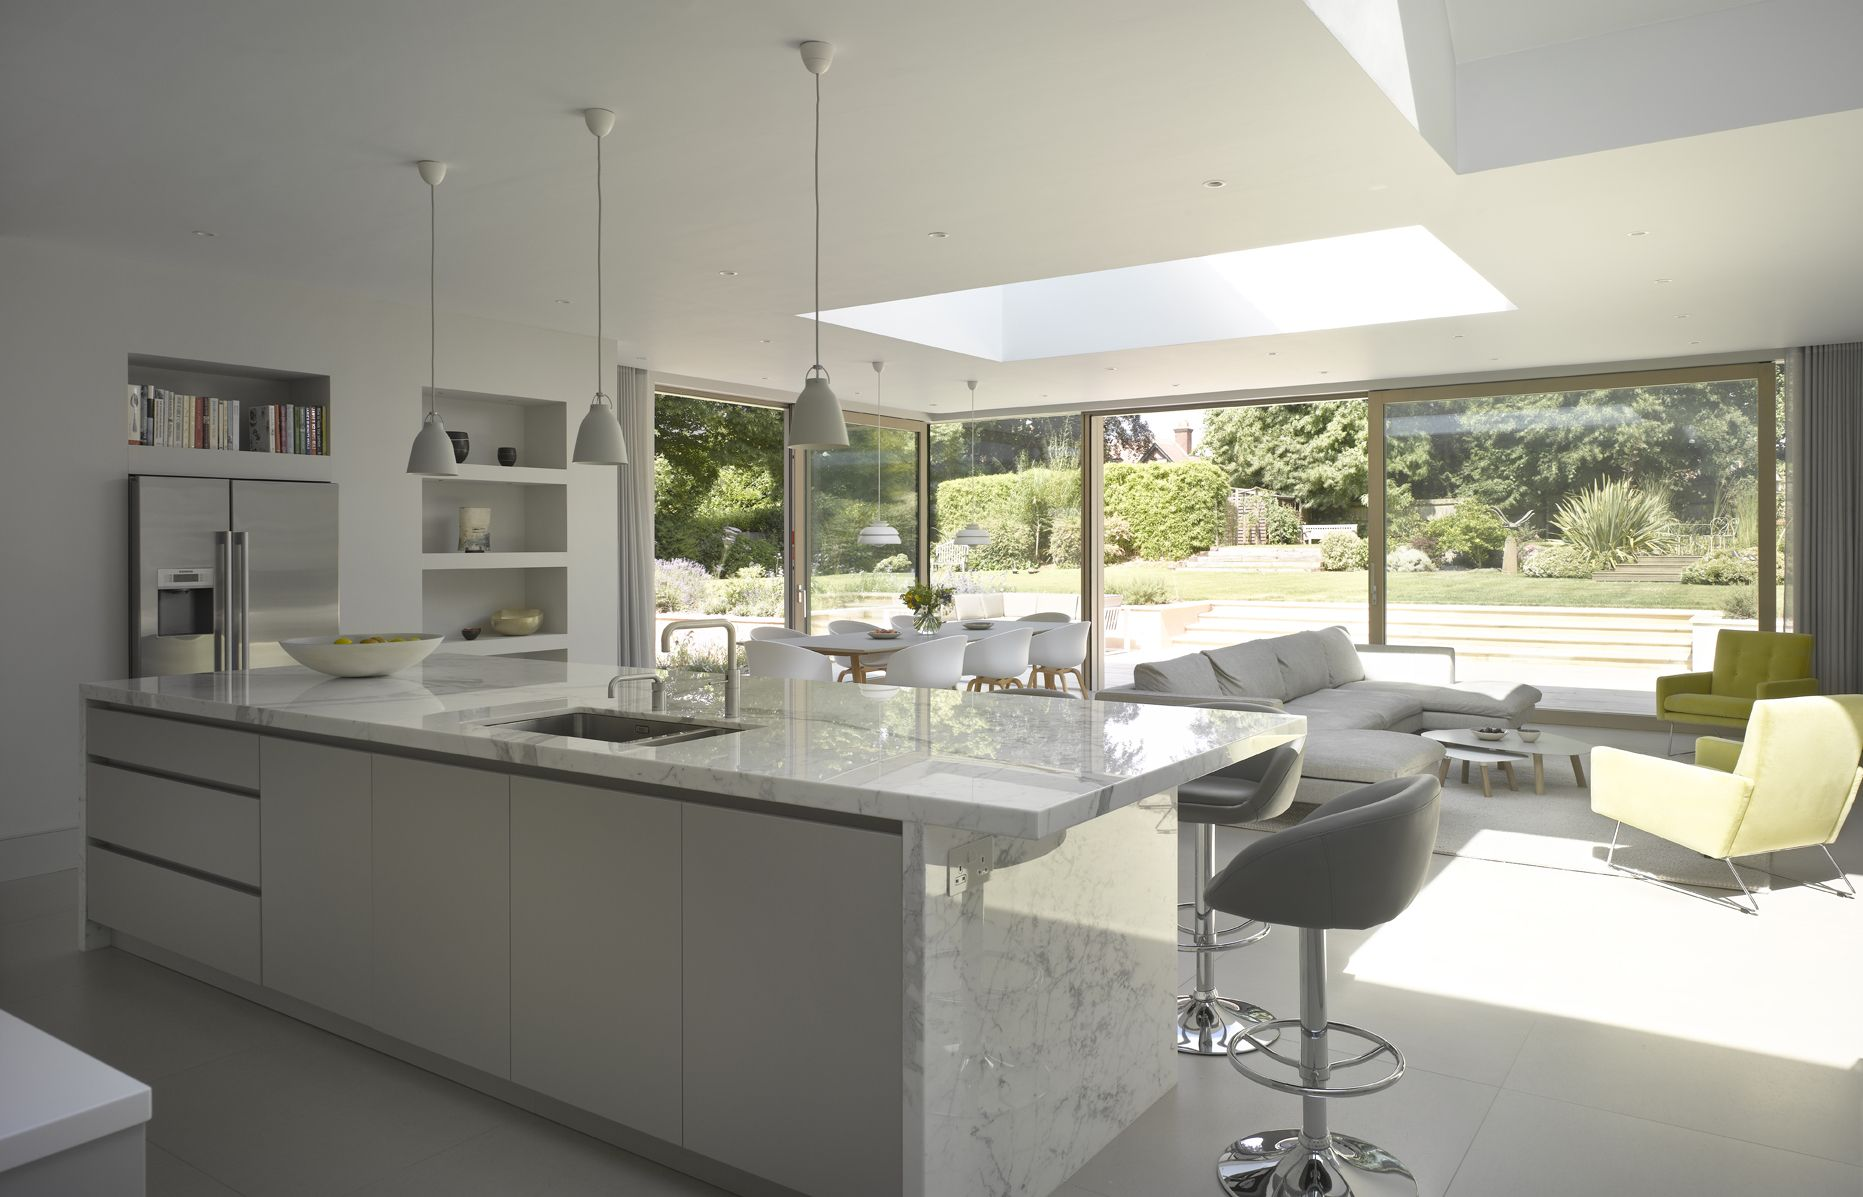 Modern kitchen extensions - our pick of the best | Open plan living ...